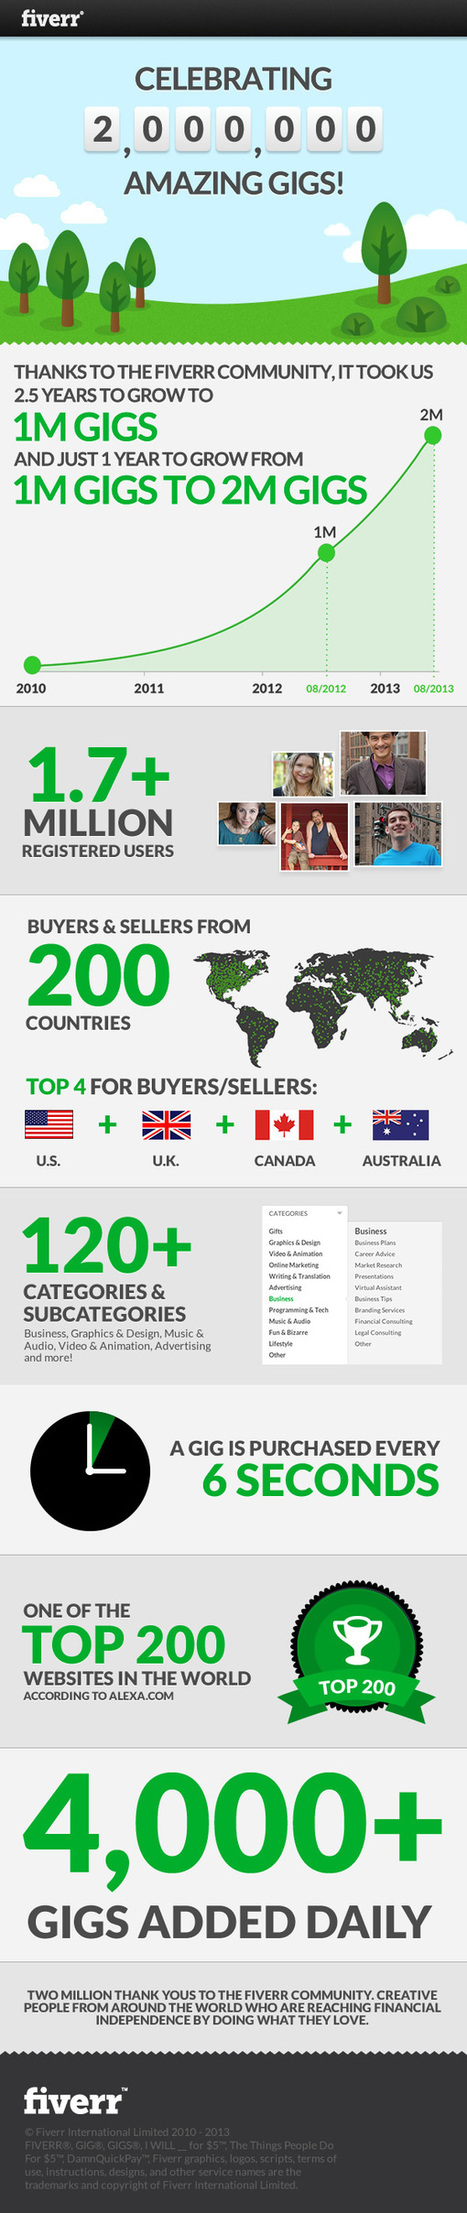 [INFOGRAPHIC] Fiverr Now Has Two Million Reasons To Celebrate #IamFiverr | ecommerce & career | Scoop.it